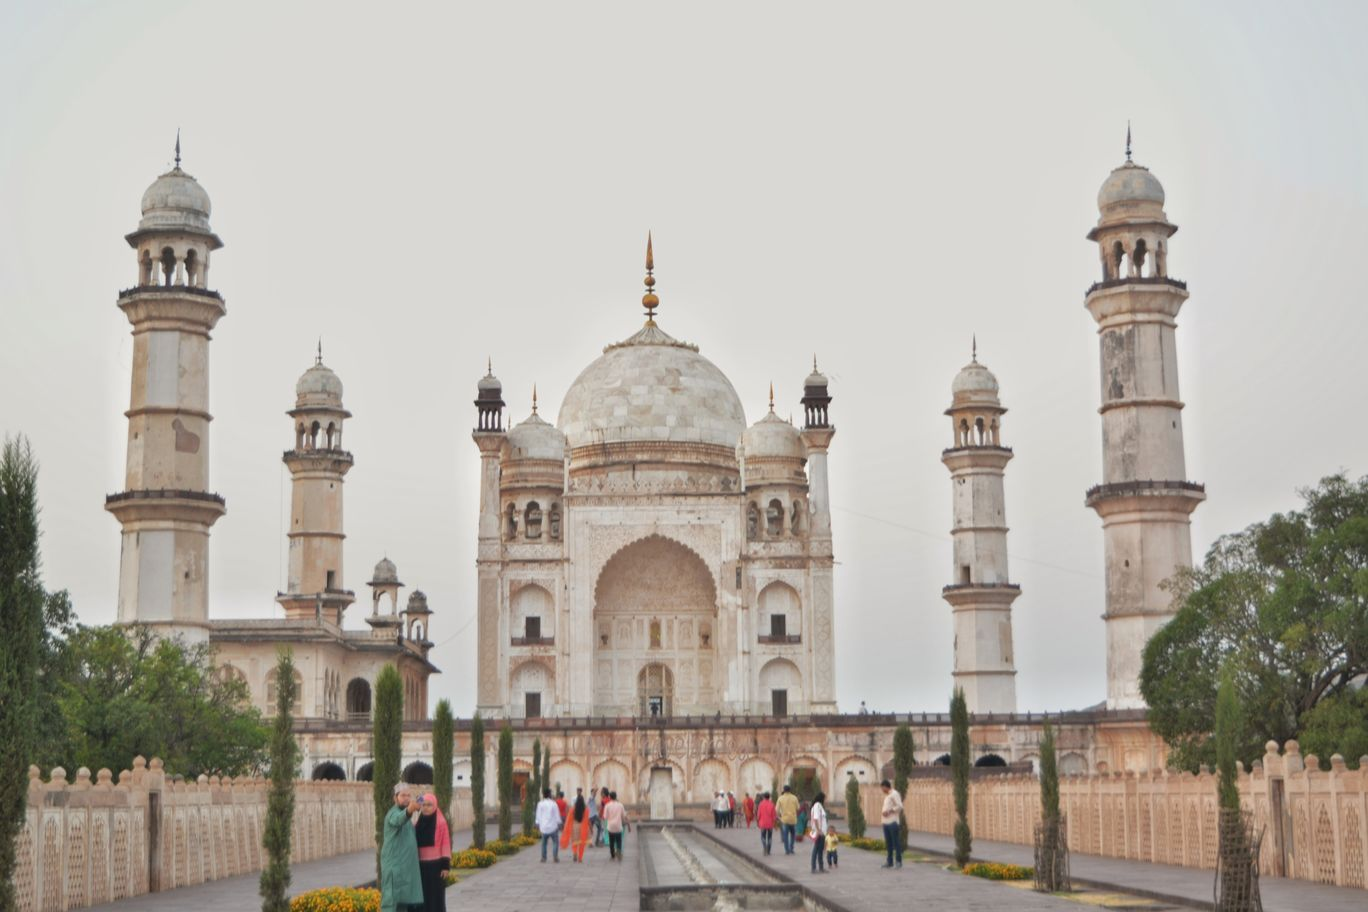 Photo of Bibi Ka Maqbara By hrushi palodkar